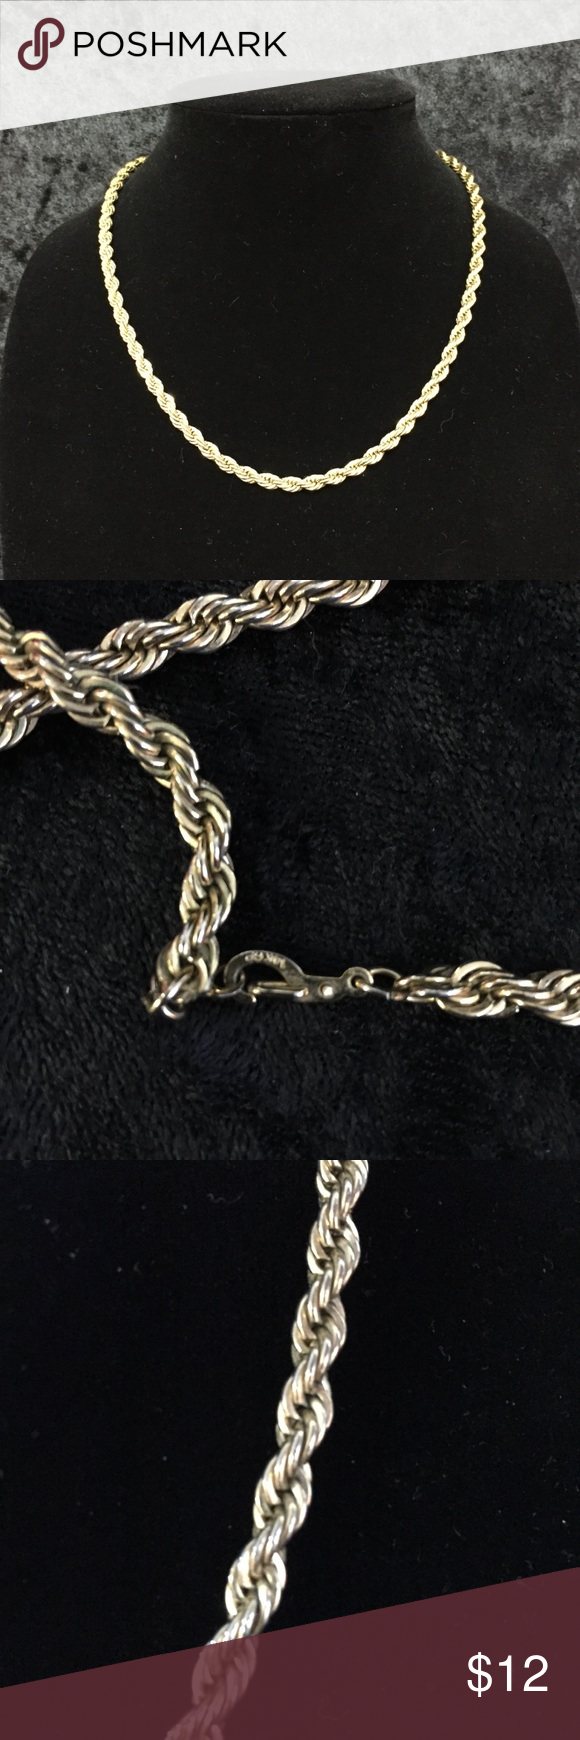 14kgp Vintage Rope Chain A007 Rope Chain Chain Rope Necklace